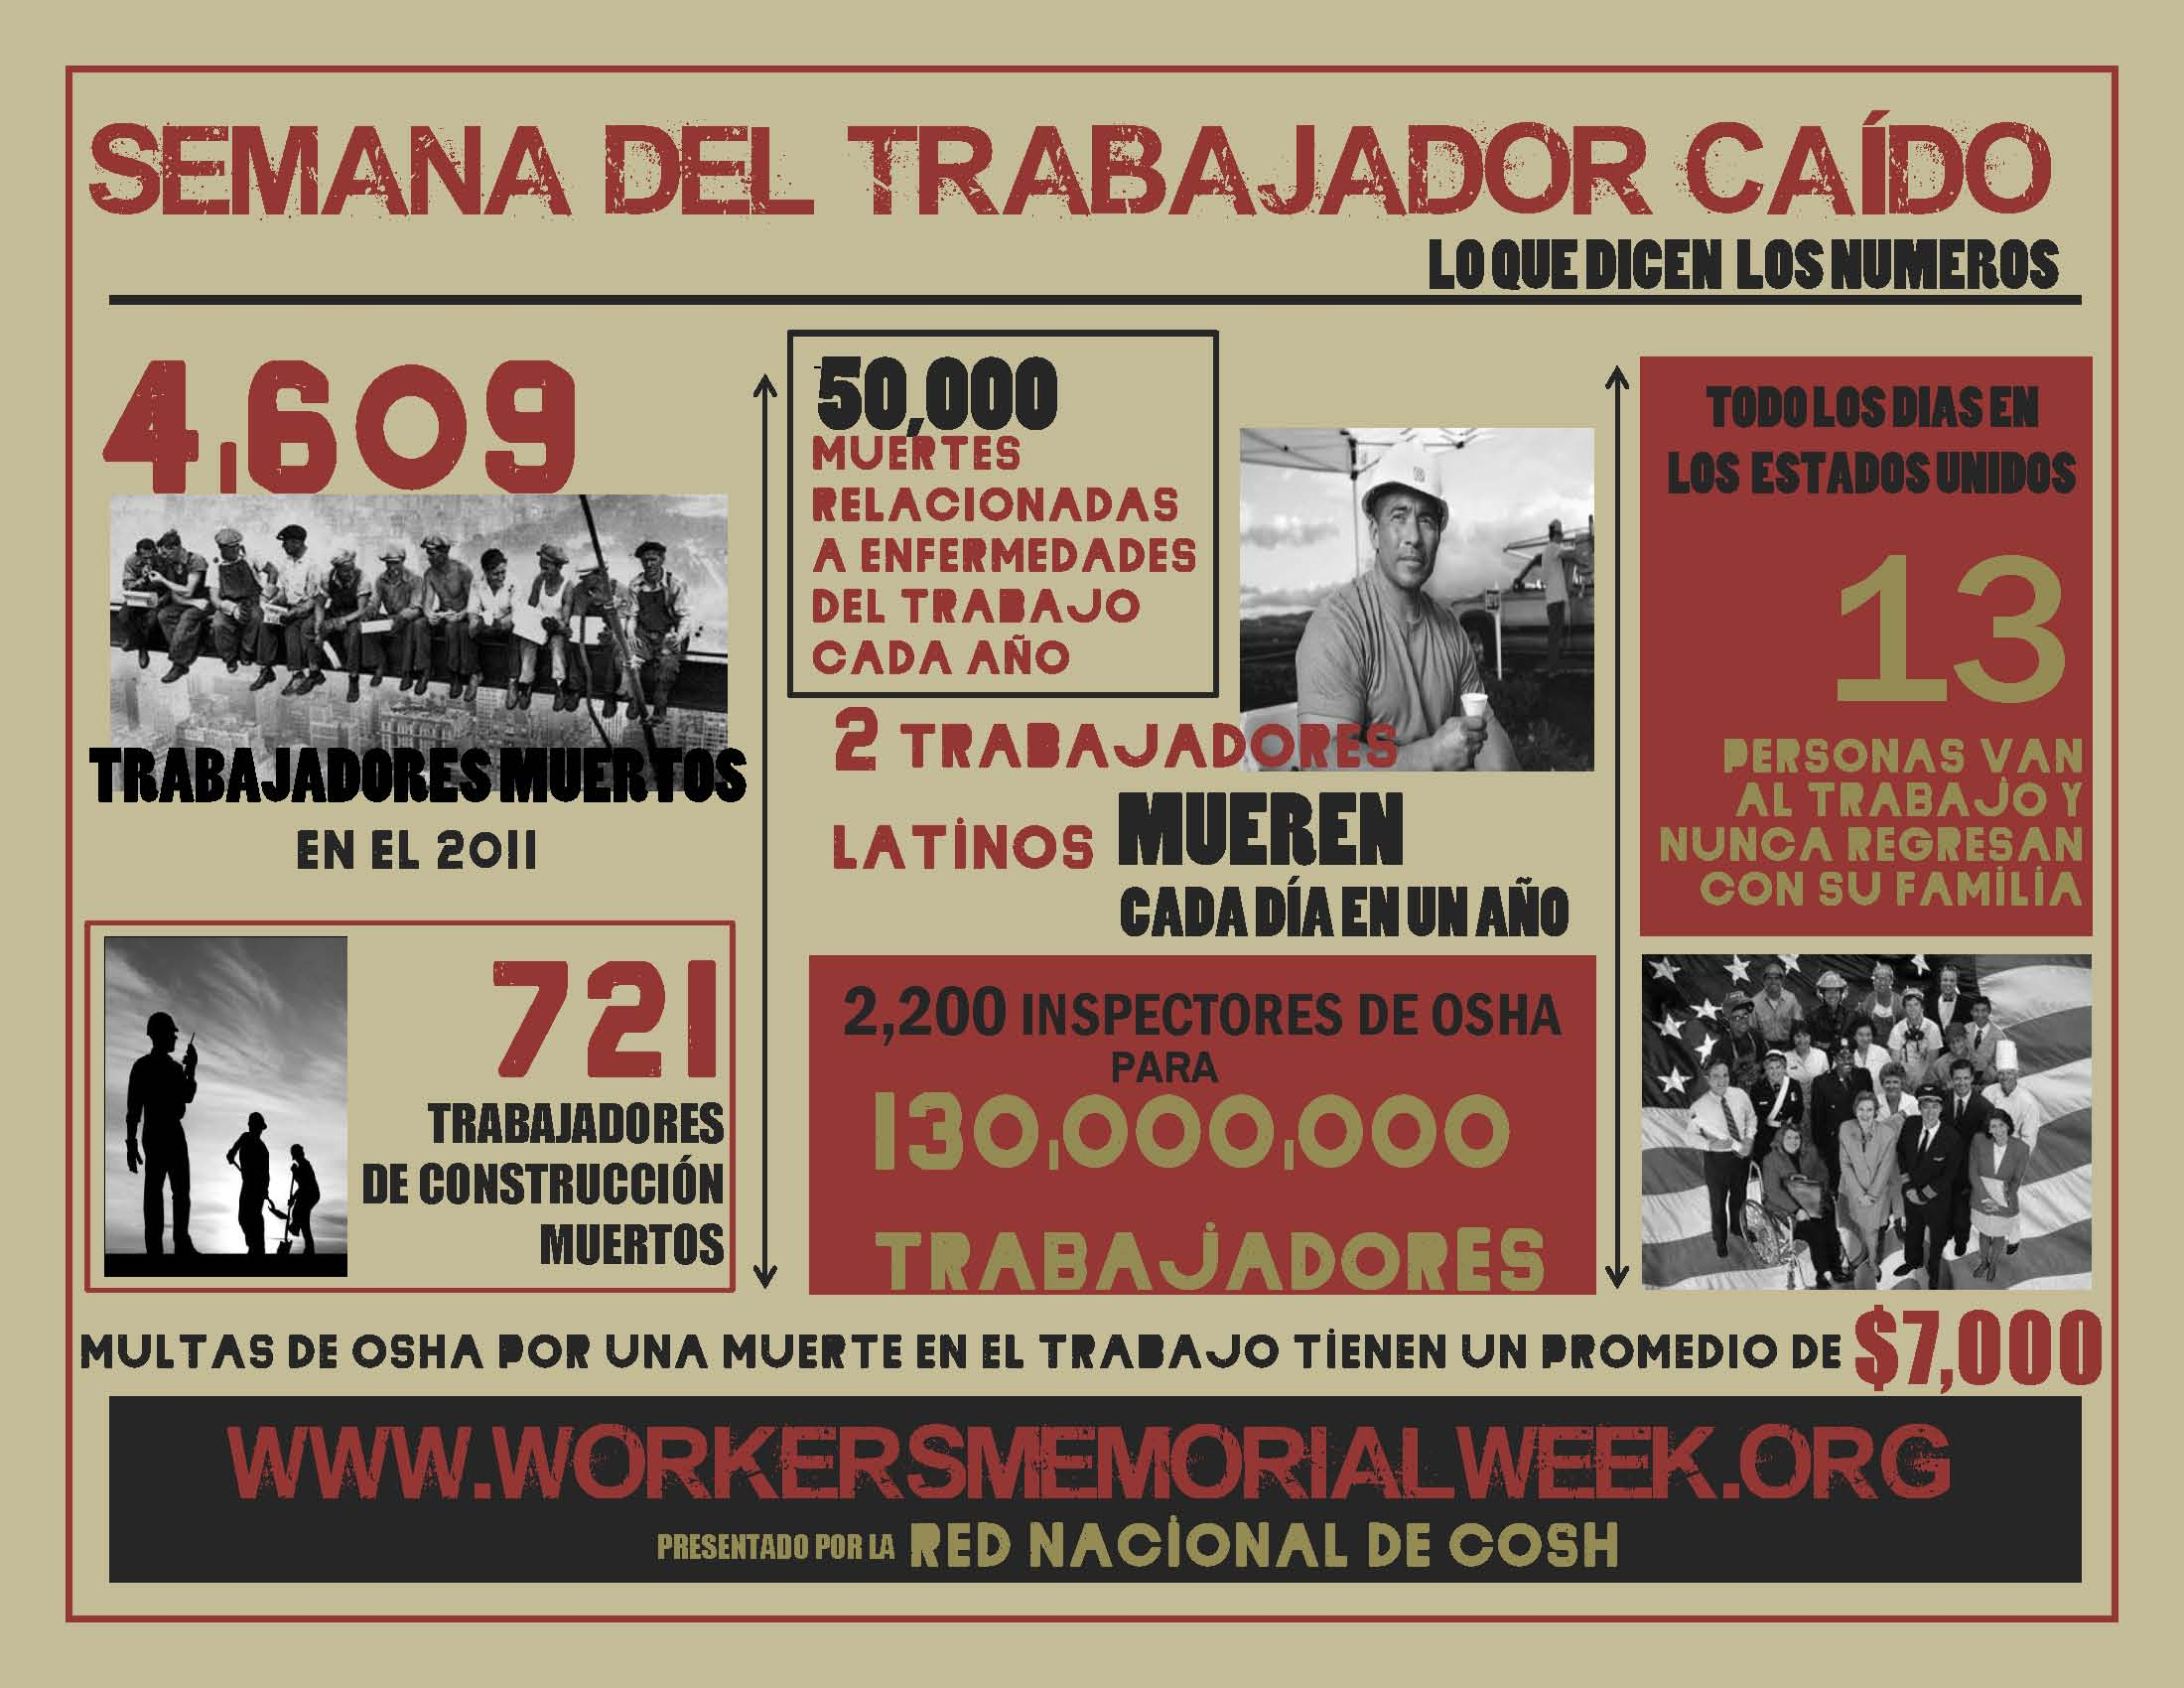 Workers' Memorial Week of Action Infographic in Spanish